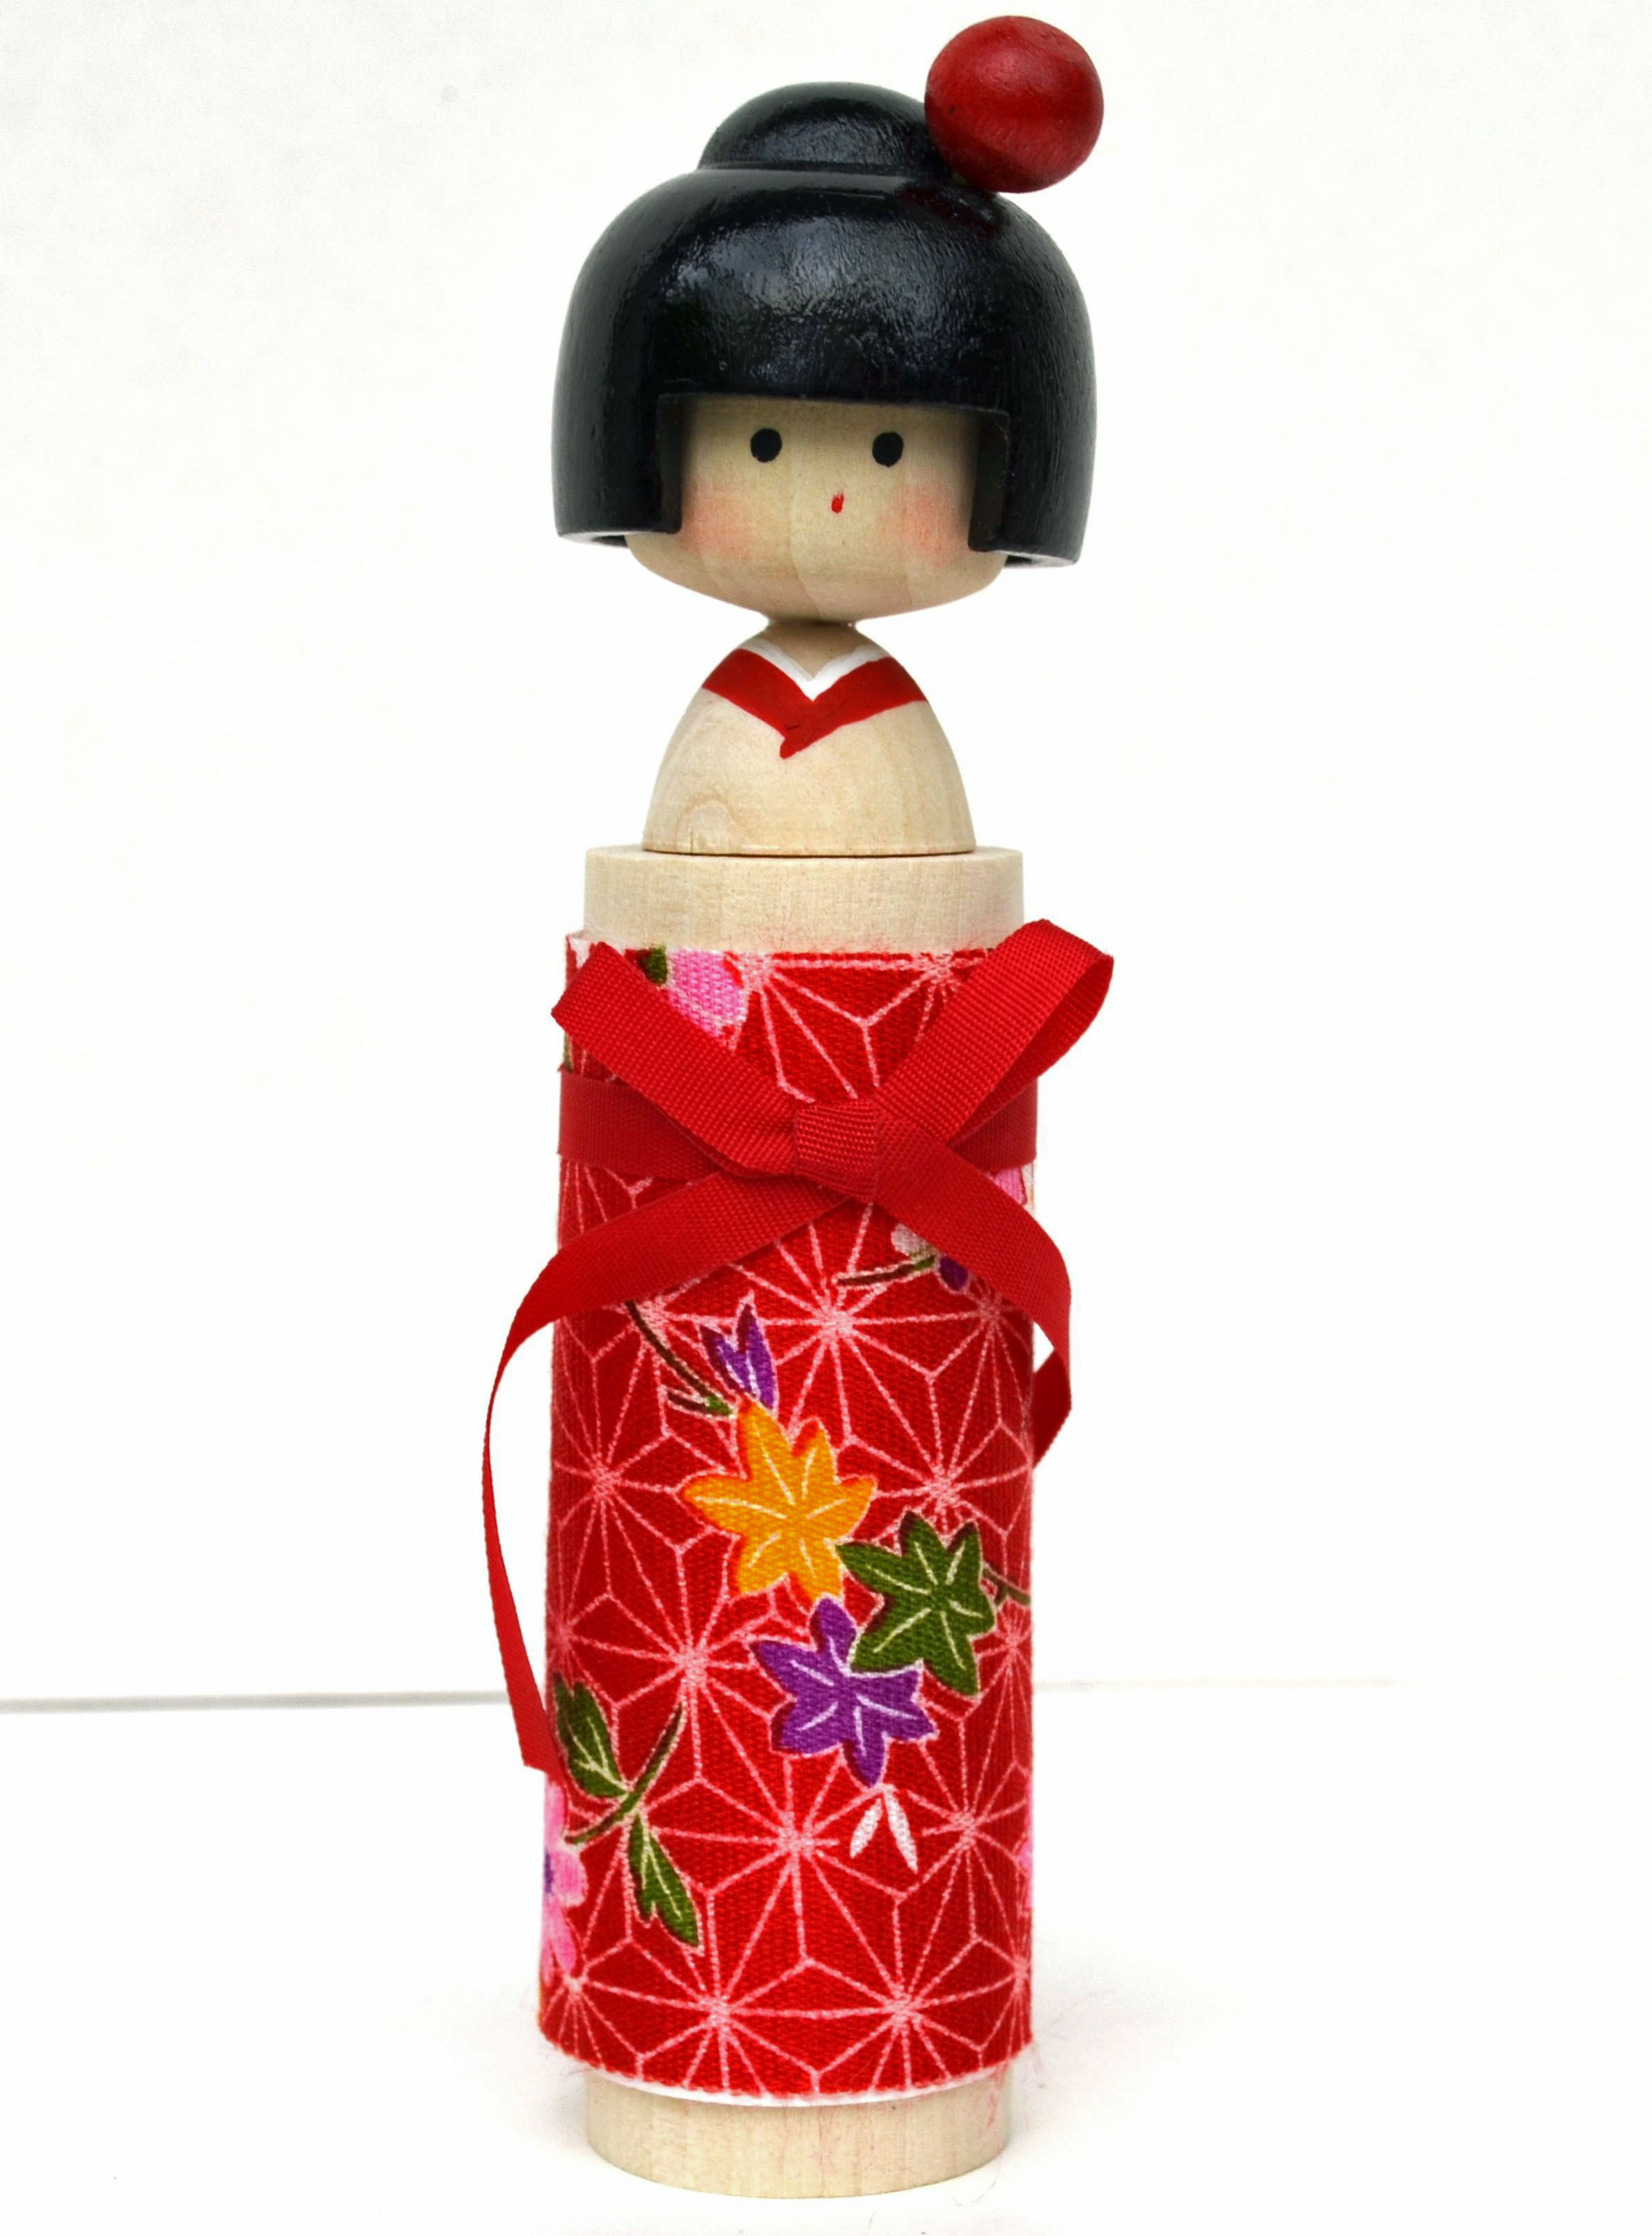 Kokeshi Puppen aus Japan  ww.dixing-shop.de